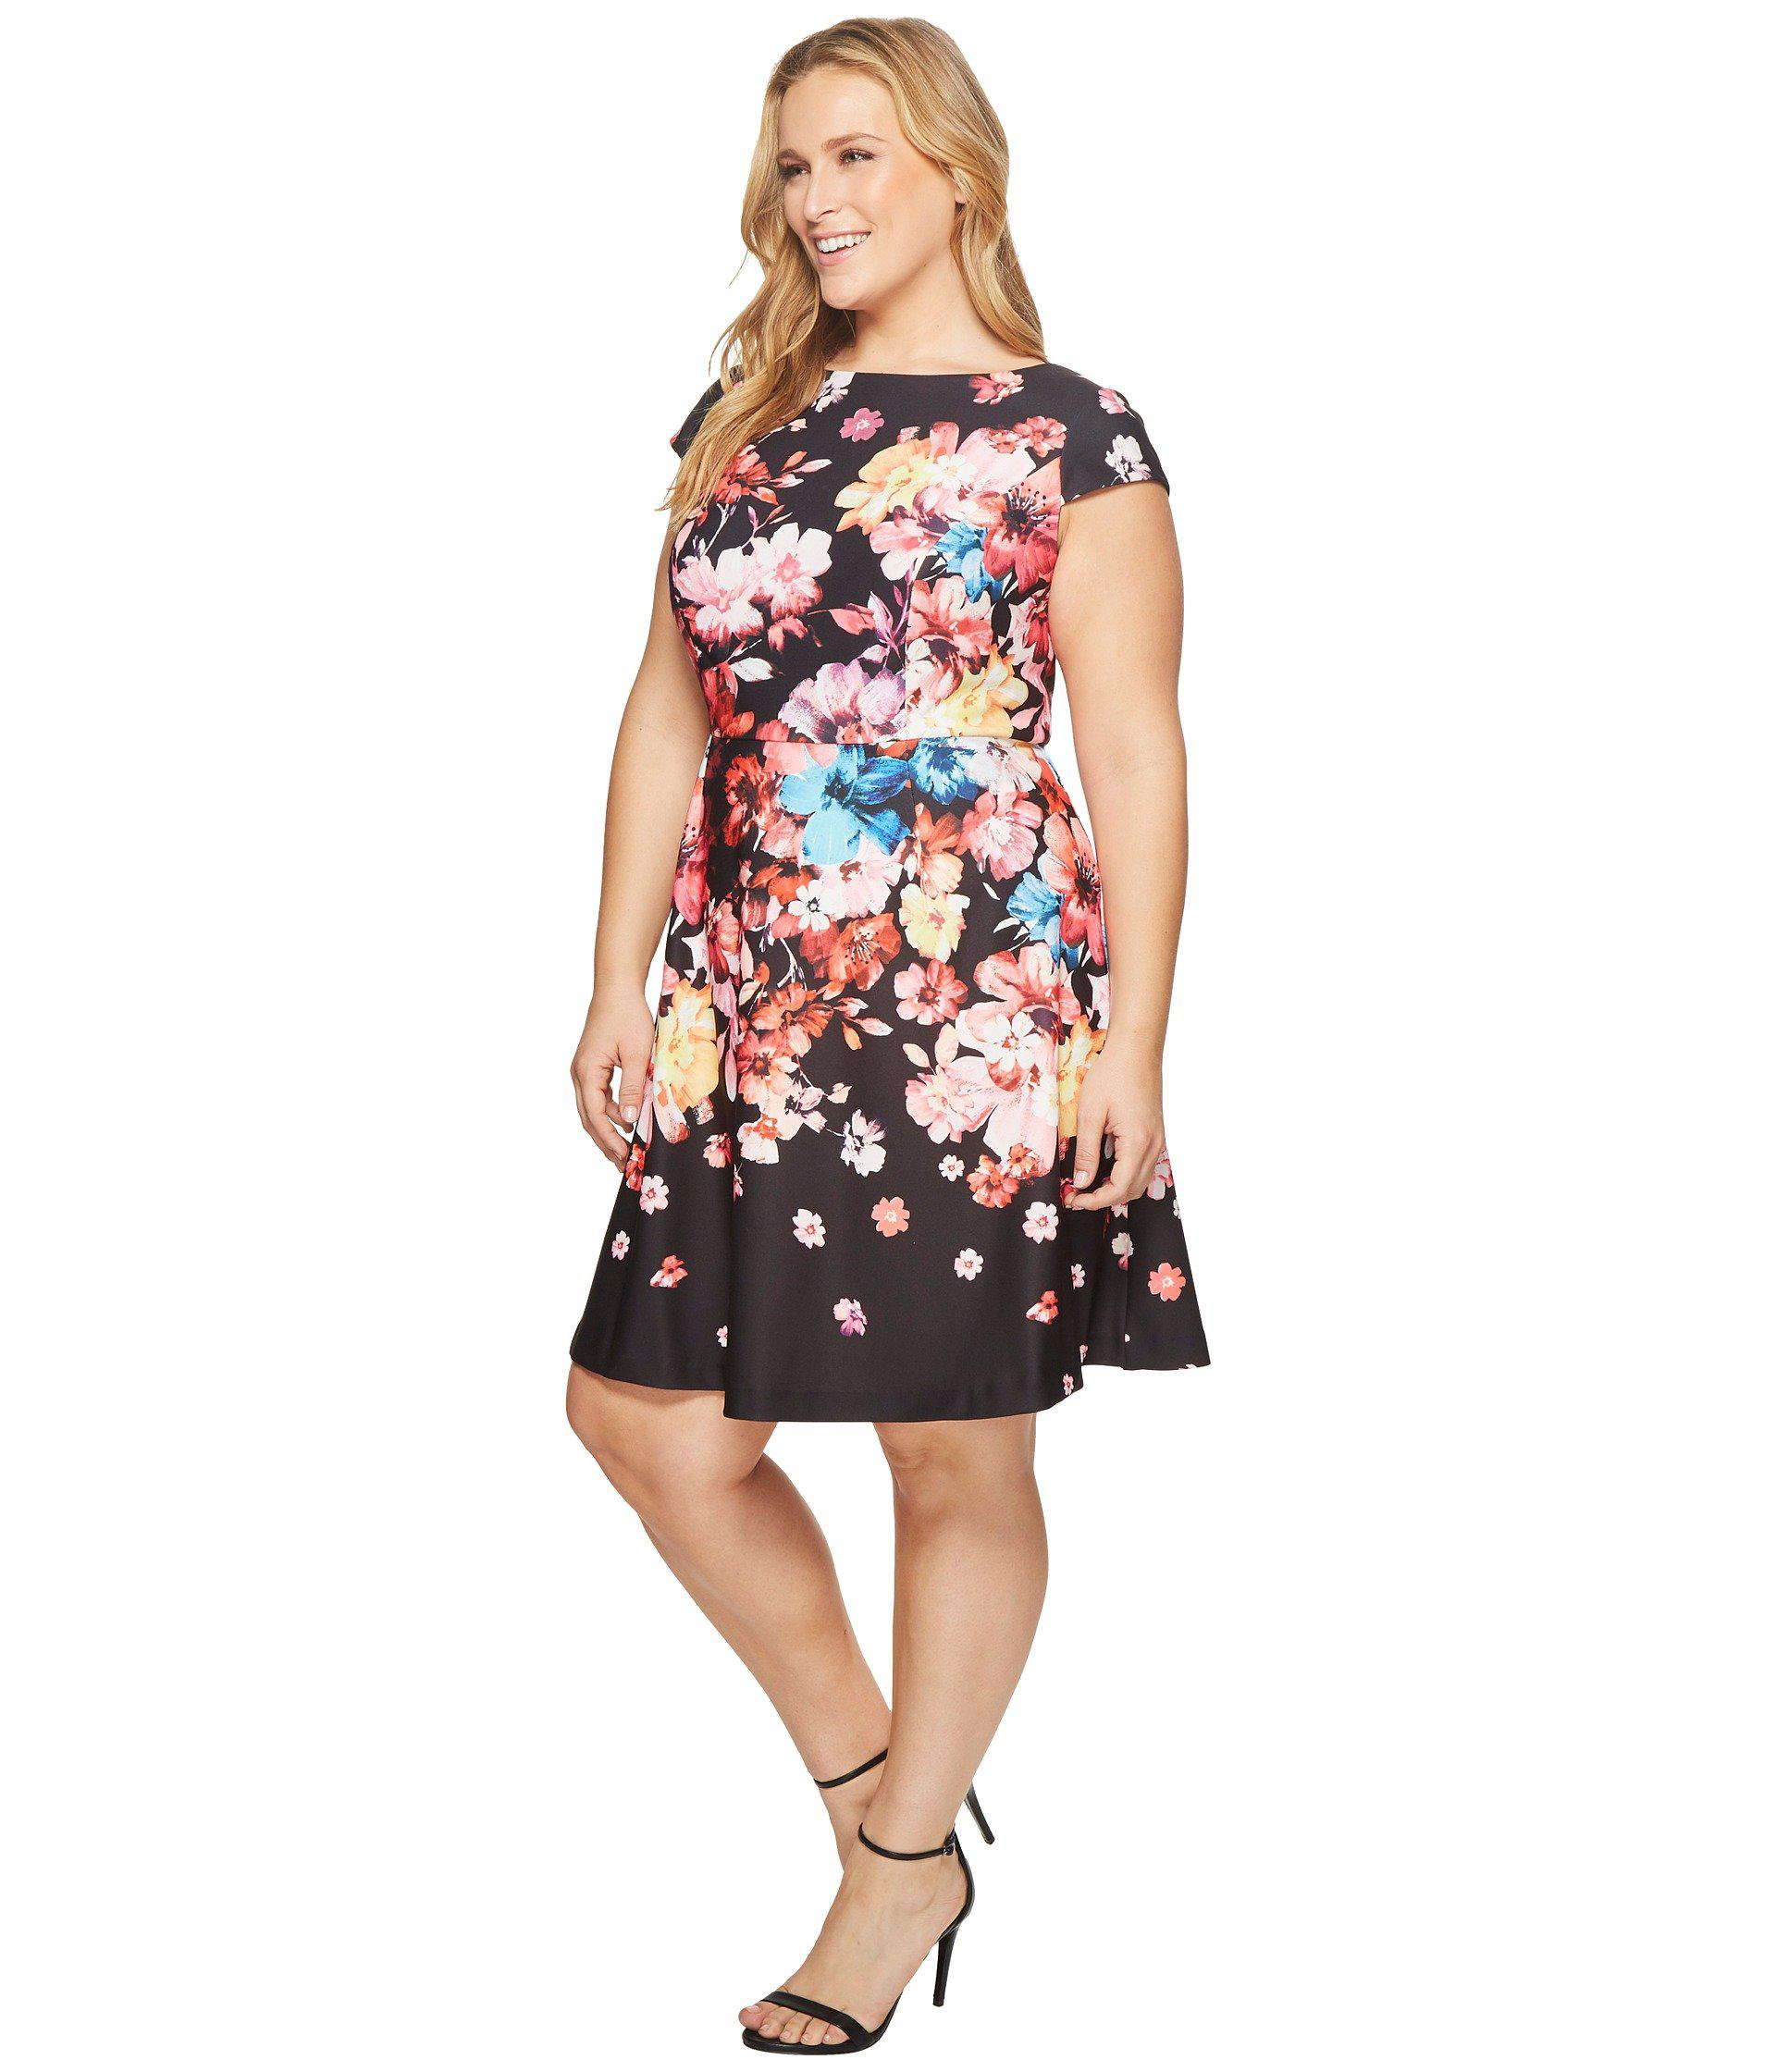 0091bd37e21c5 Lyst - Adrianna Papell Plus Size Spring In Bloom Printed Fit And Flare in  Black - Save 35%